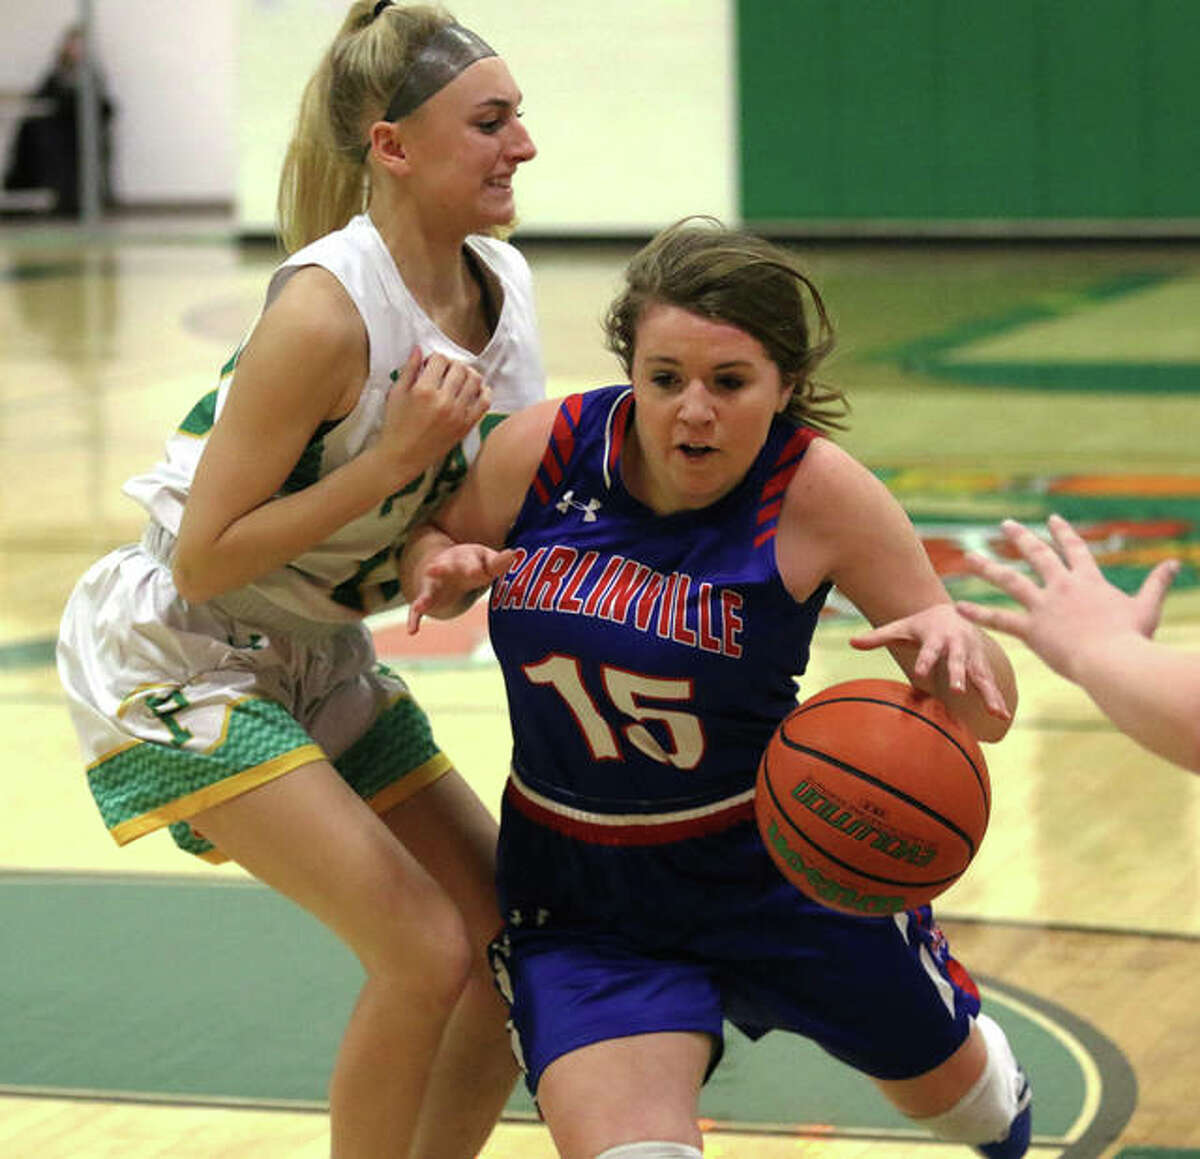 Carlinville's Gracie Reels (15) drives on Southwestern's Morgan Durham in during a 2020 basketball game.